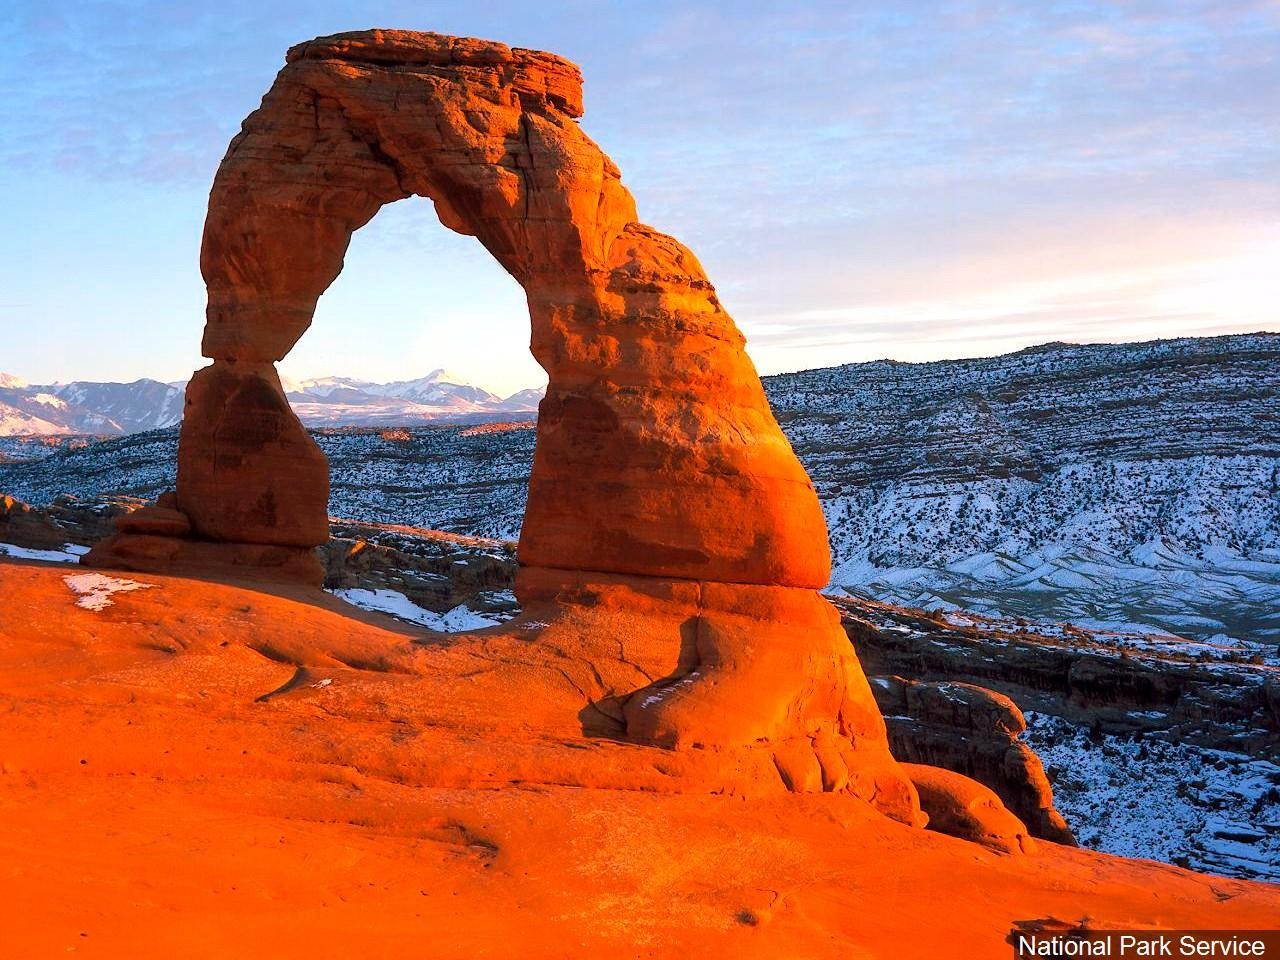 Utah is the second smartest state in the country, according to a new study. (Photo: National Park Service via MGN)